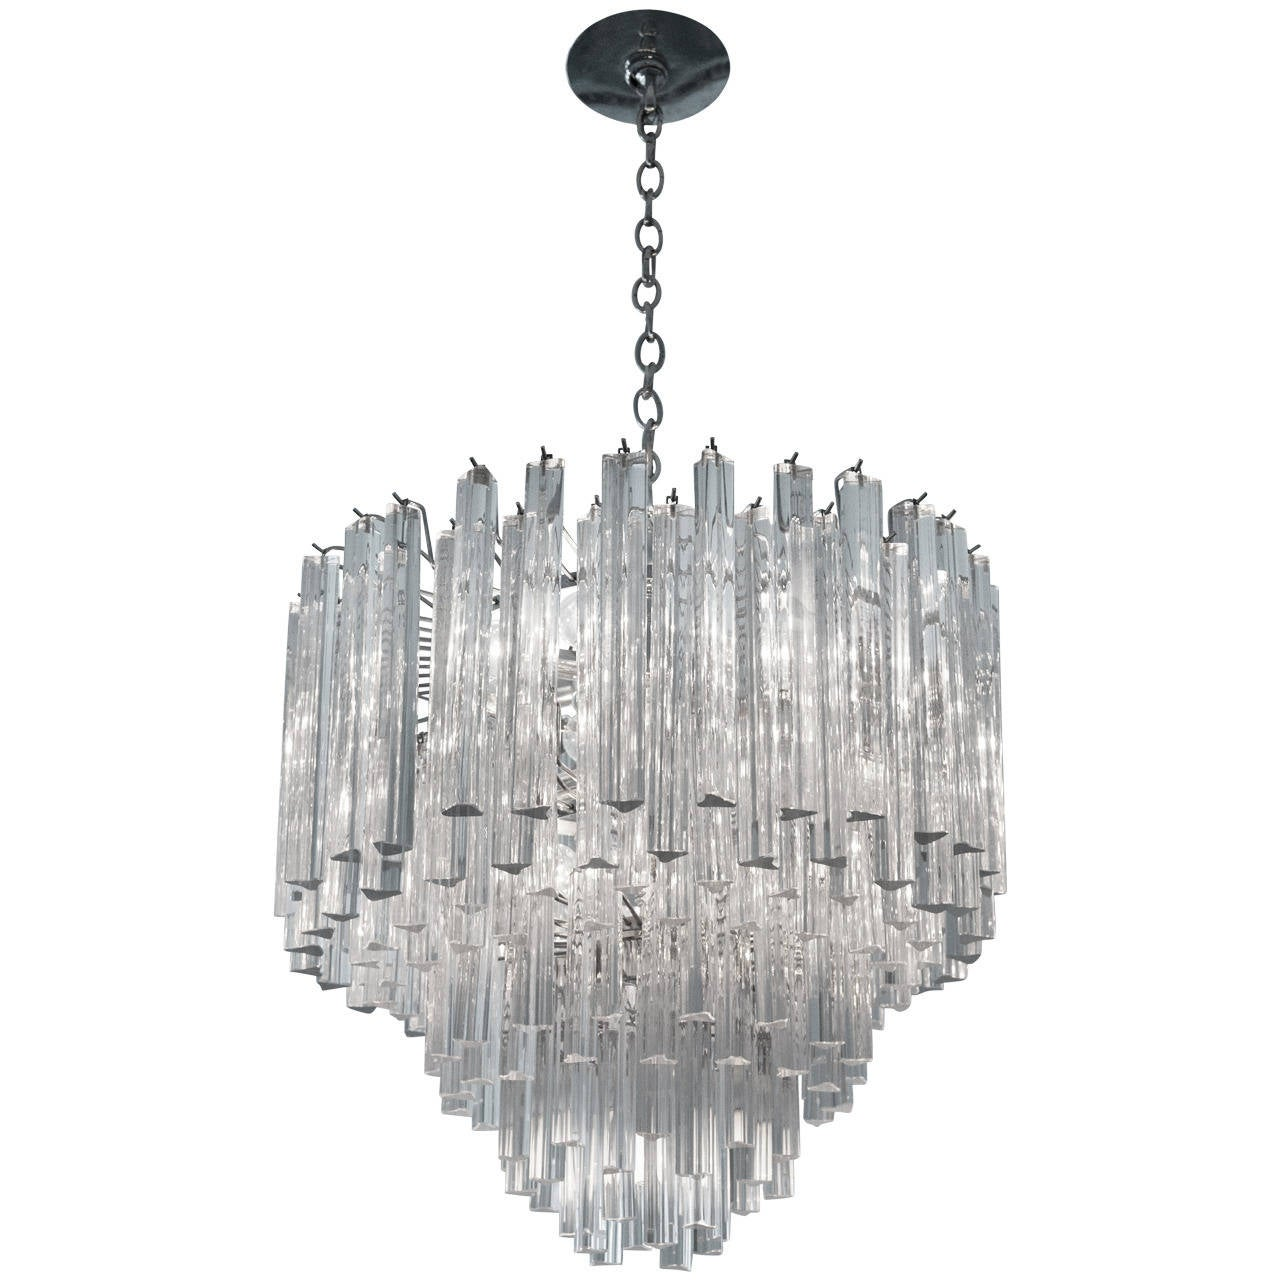 Modern italian crystal venini chandelier by camer at 1stdibs modern italian crystal venini chandelier by camer for sale arubaitofo Gallery